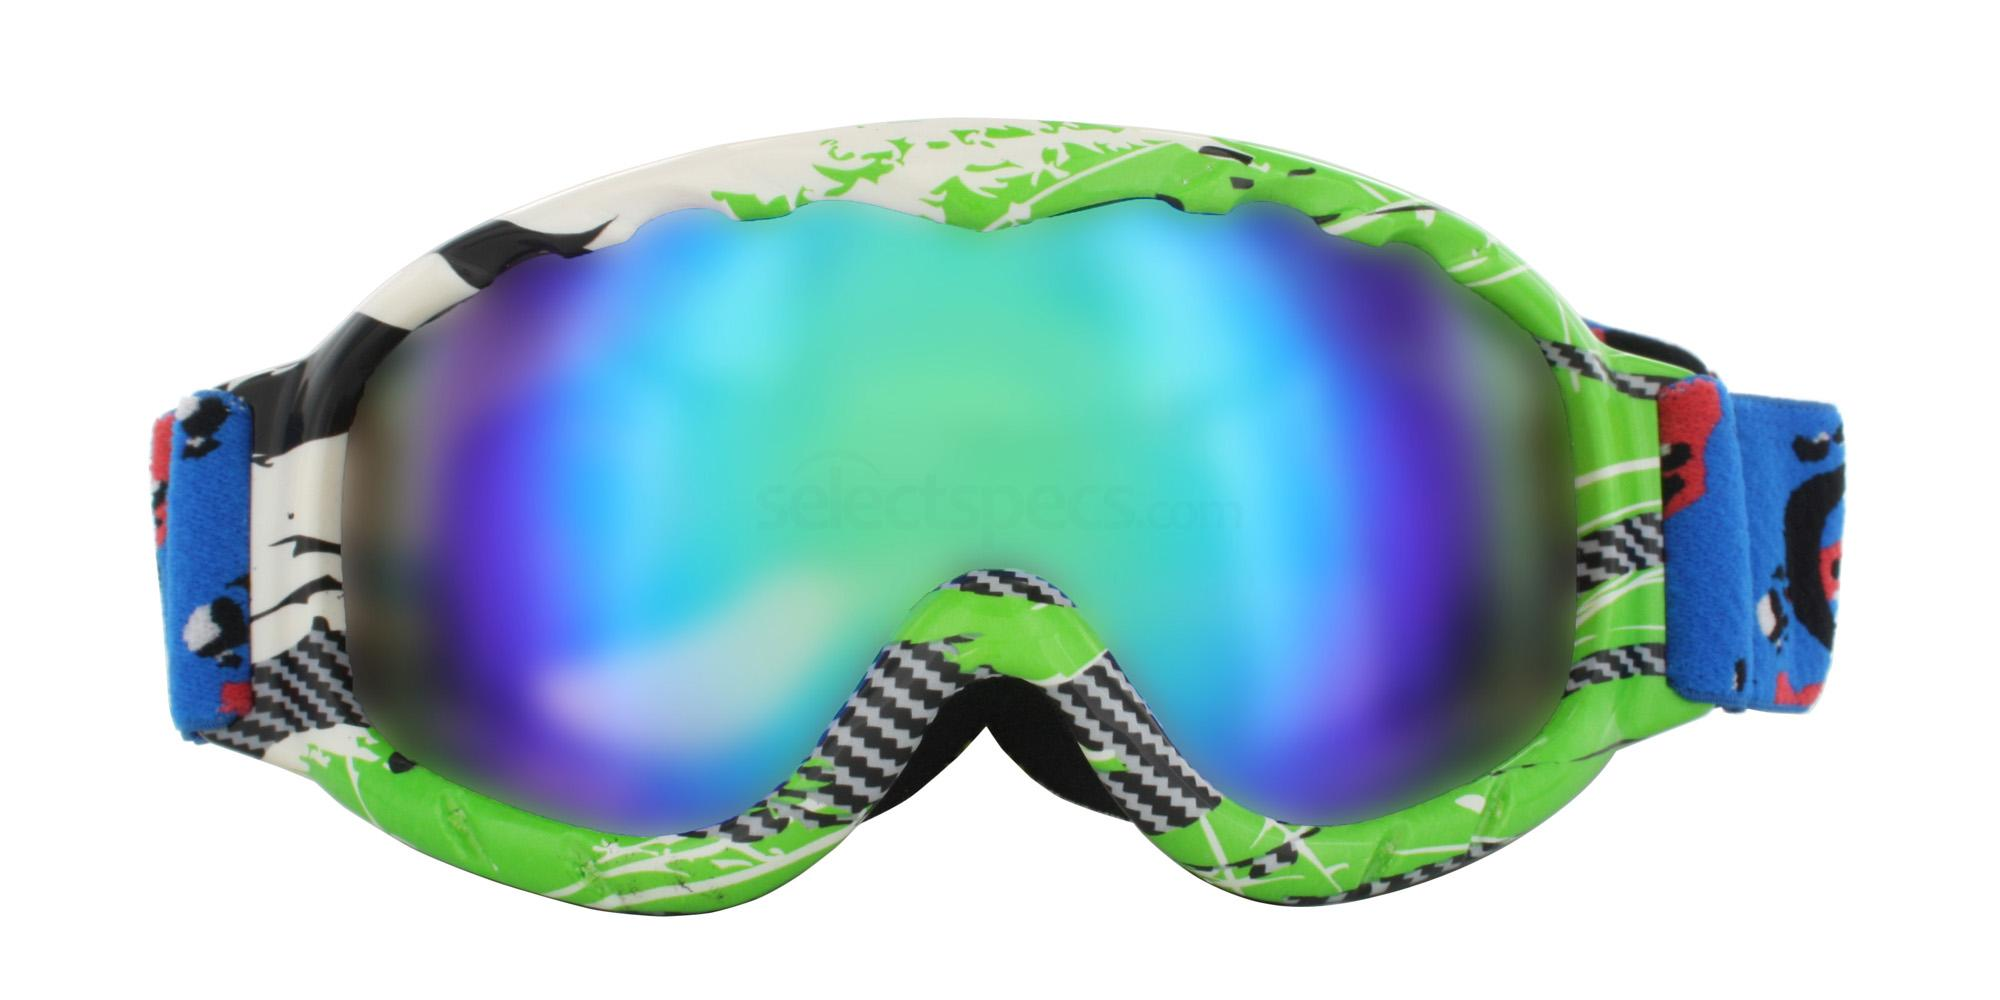 Green White Black H035 Ski Goggles, Aero